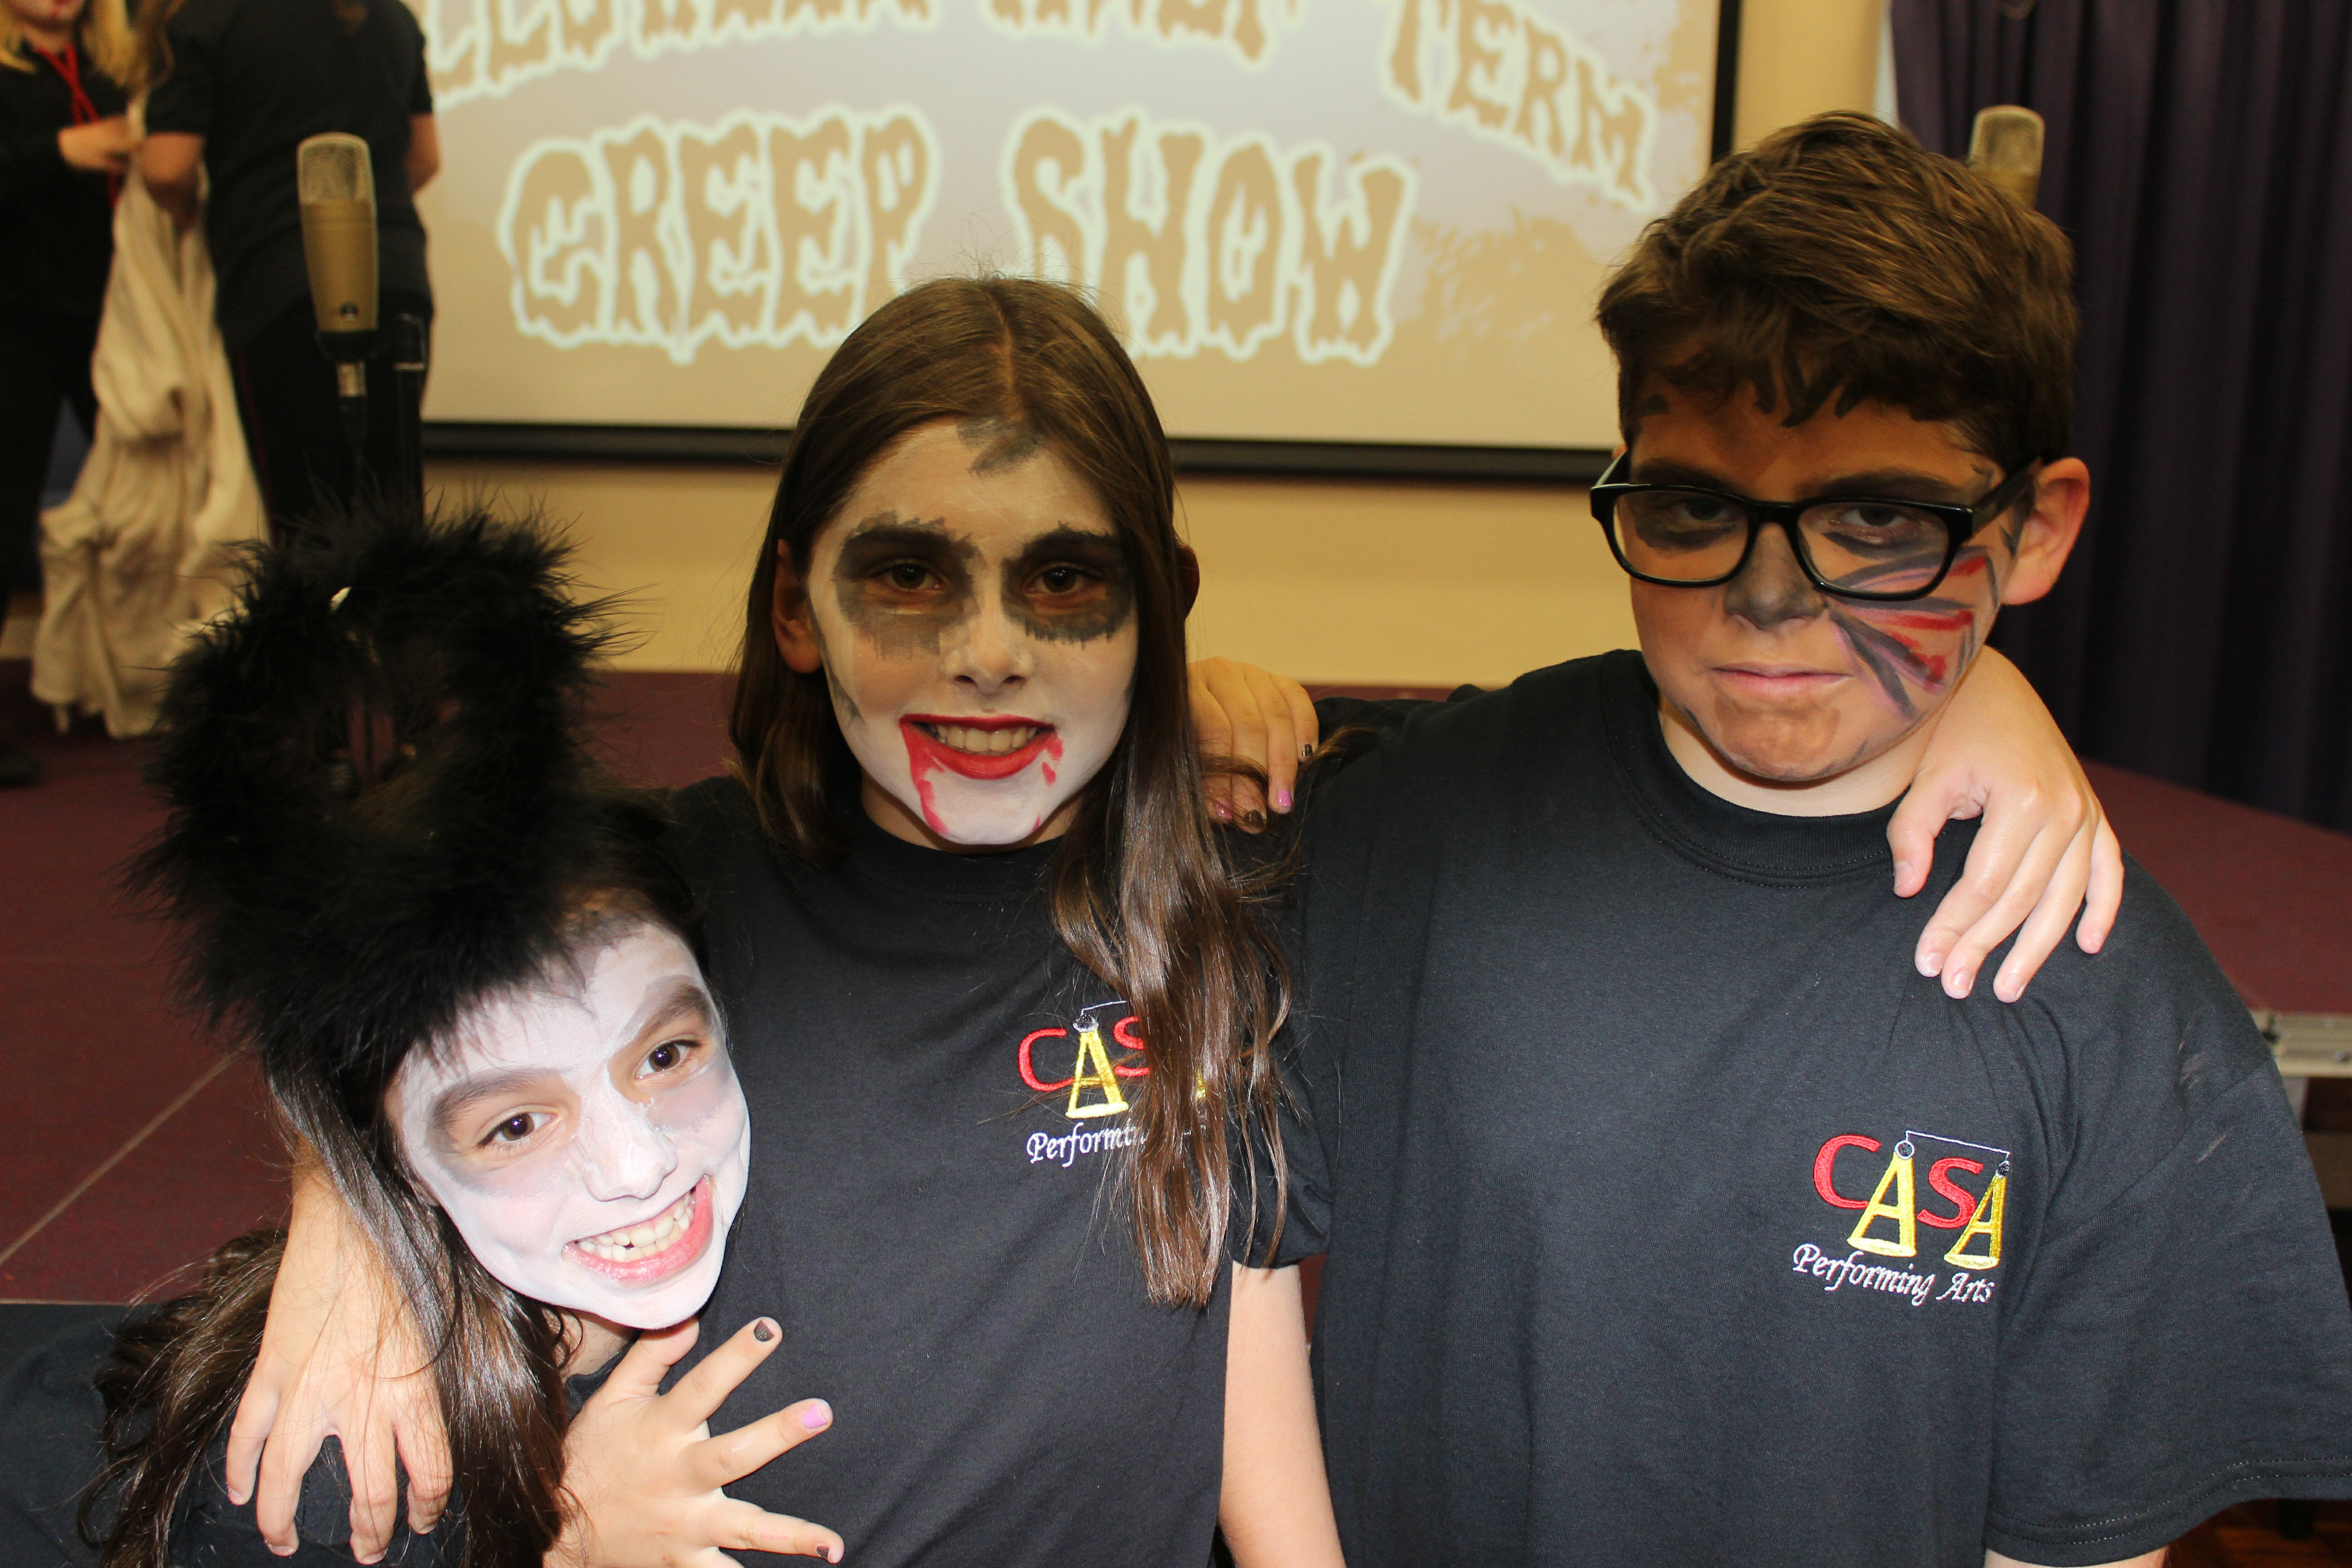 CASA Performing Arts, Halloween 2016